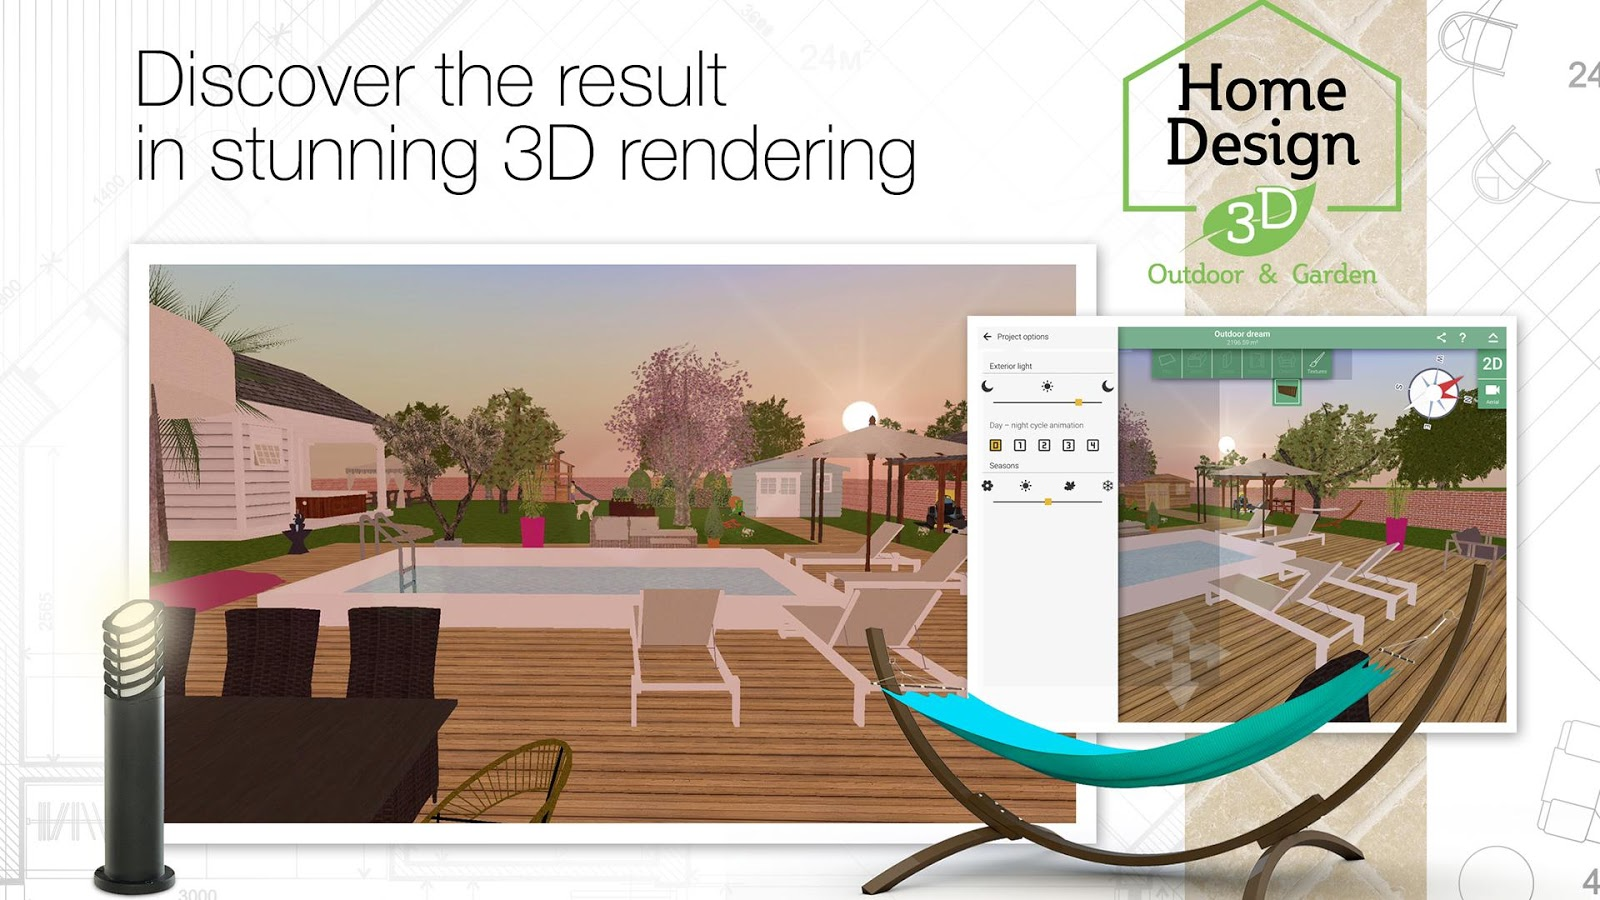 Home Design Outdoor Garden Android Apps On Google Play